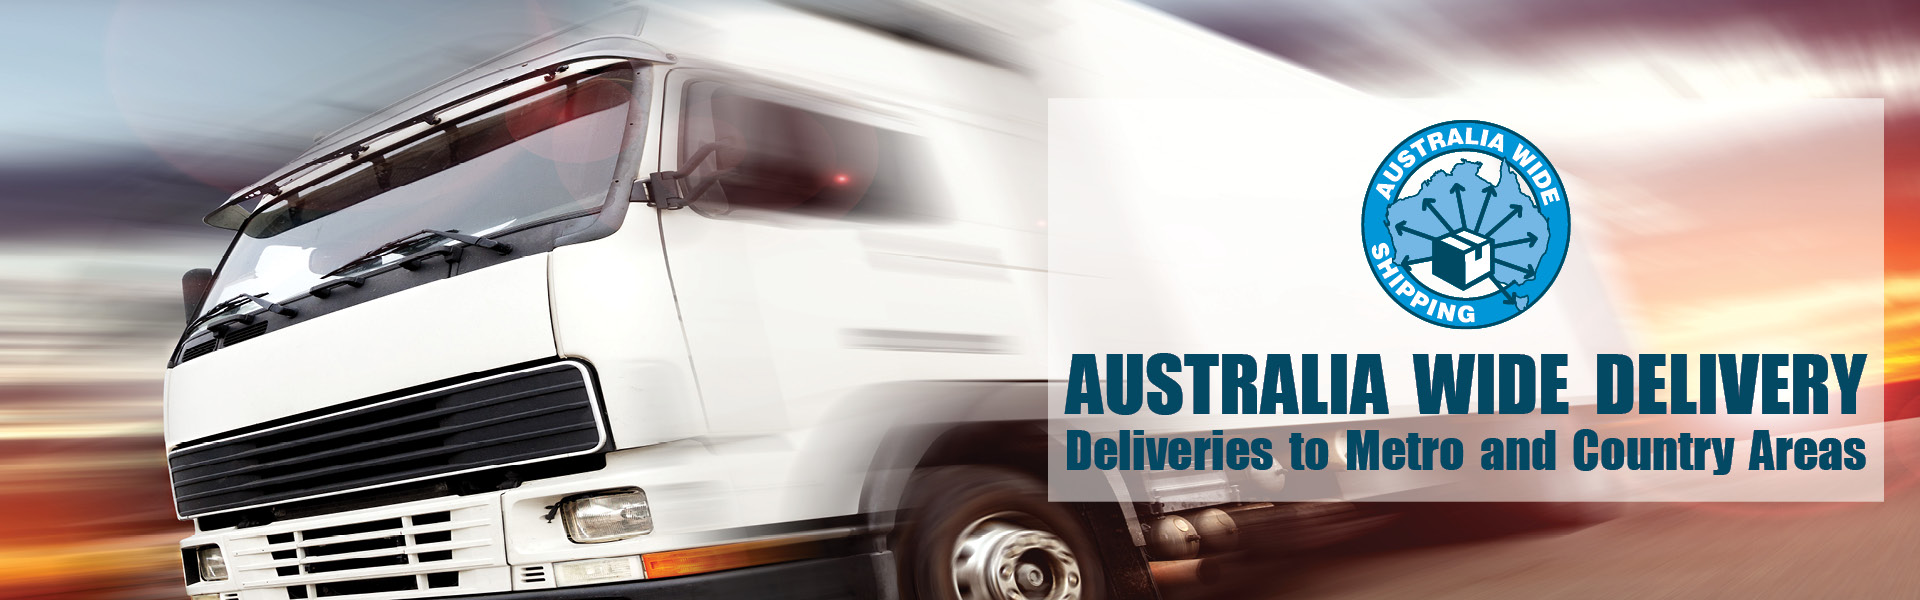 Australian Wide Delivery